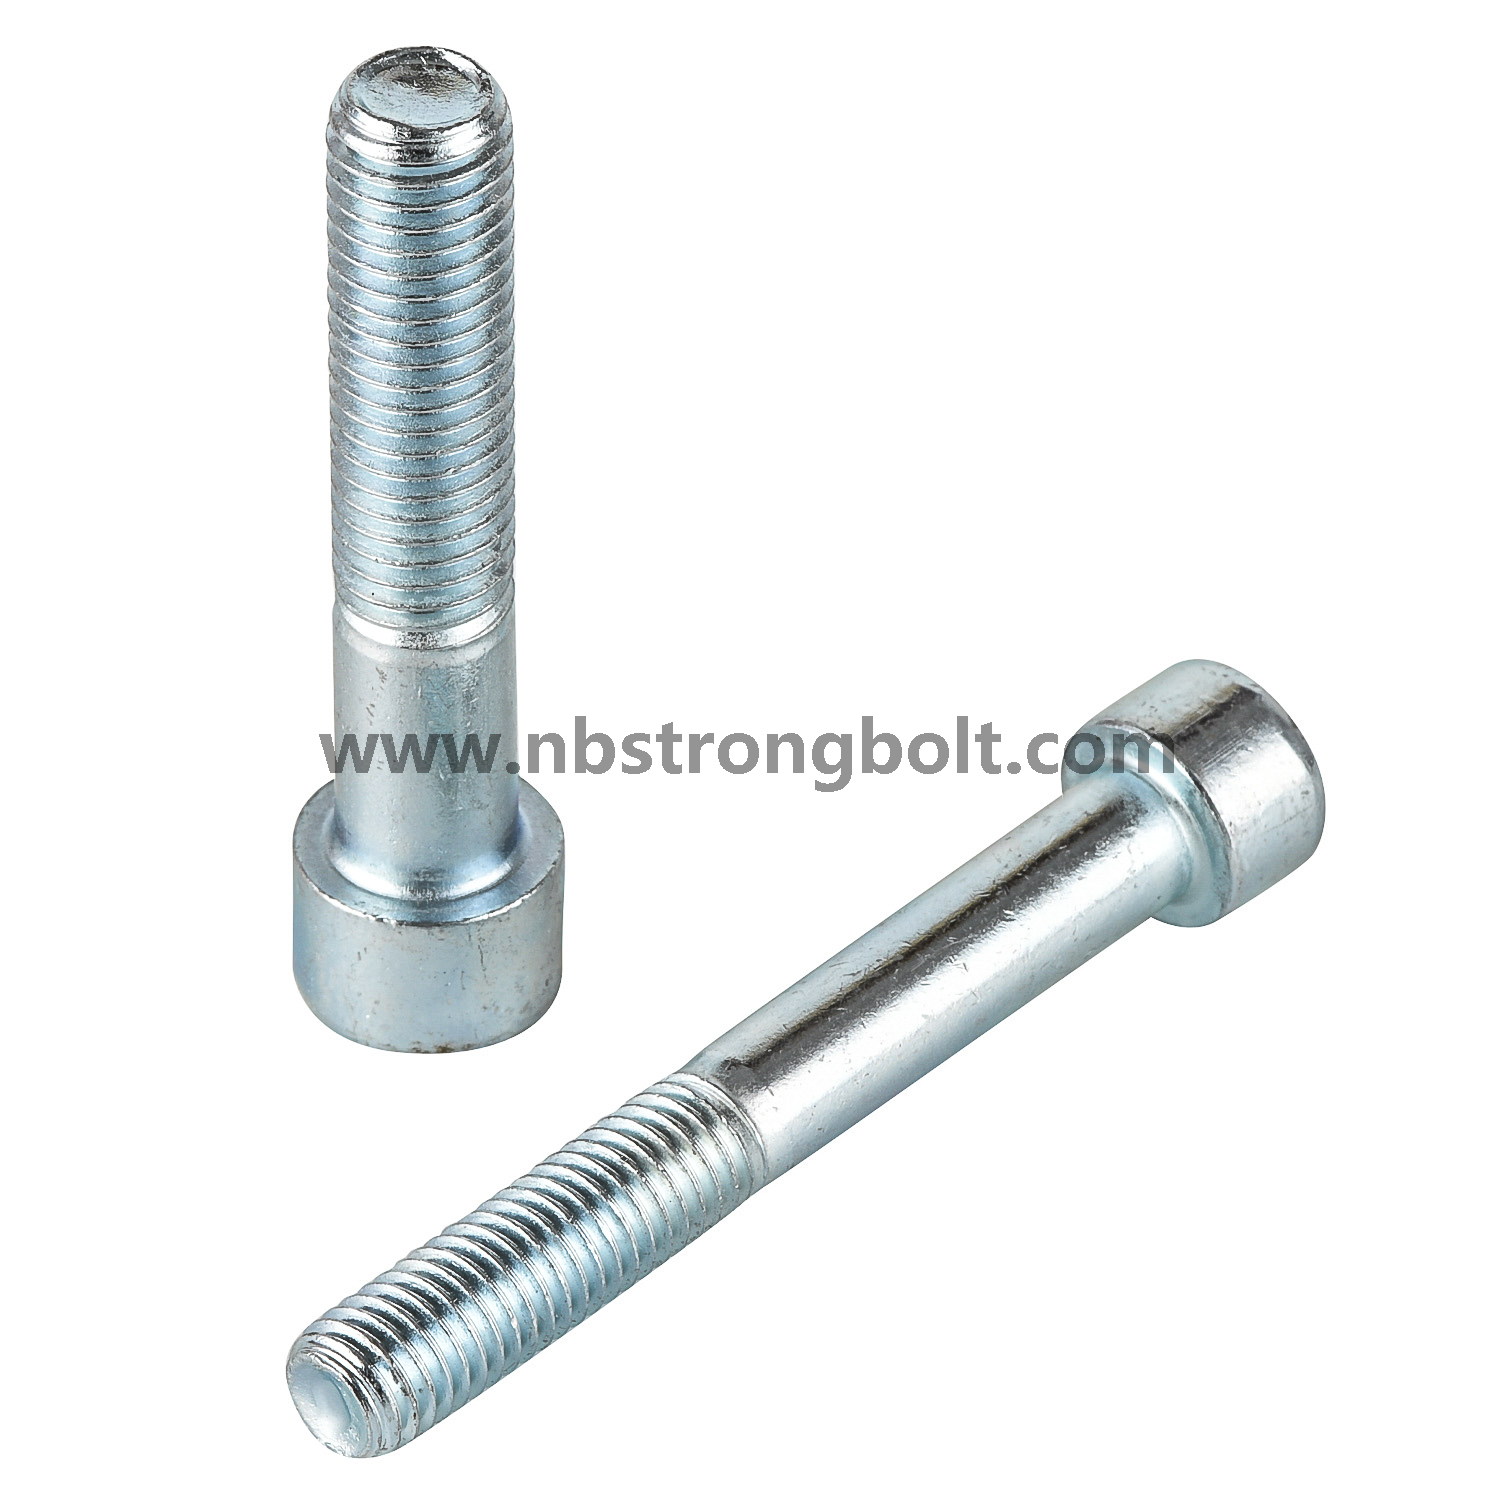 Hexagon Socket Head Cap Screws Hexagaon Socket Bolts DIN912 Grade 8.8 with White Zinc Plated Cr3+ M12X120 Ht/China bolt factory ,China bolt manufacturer